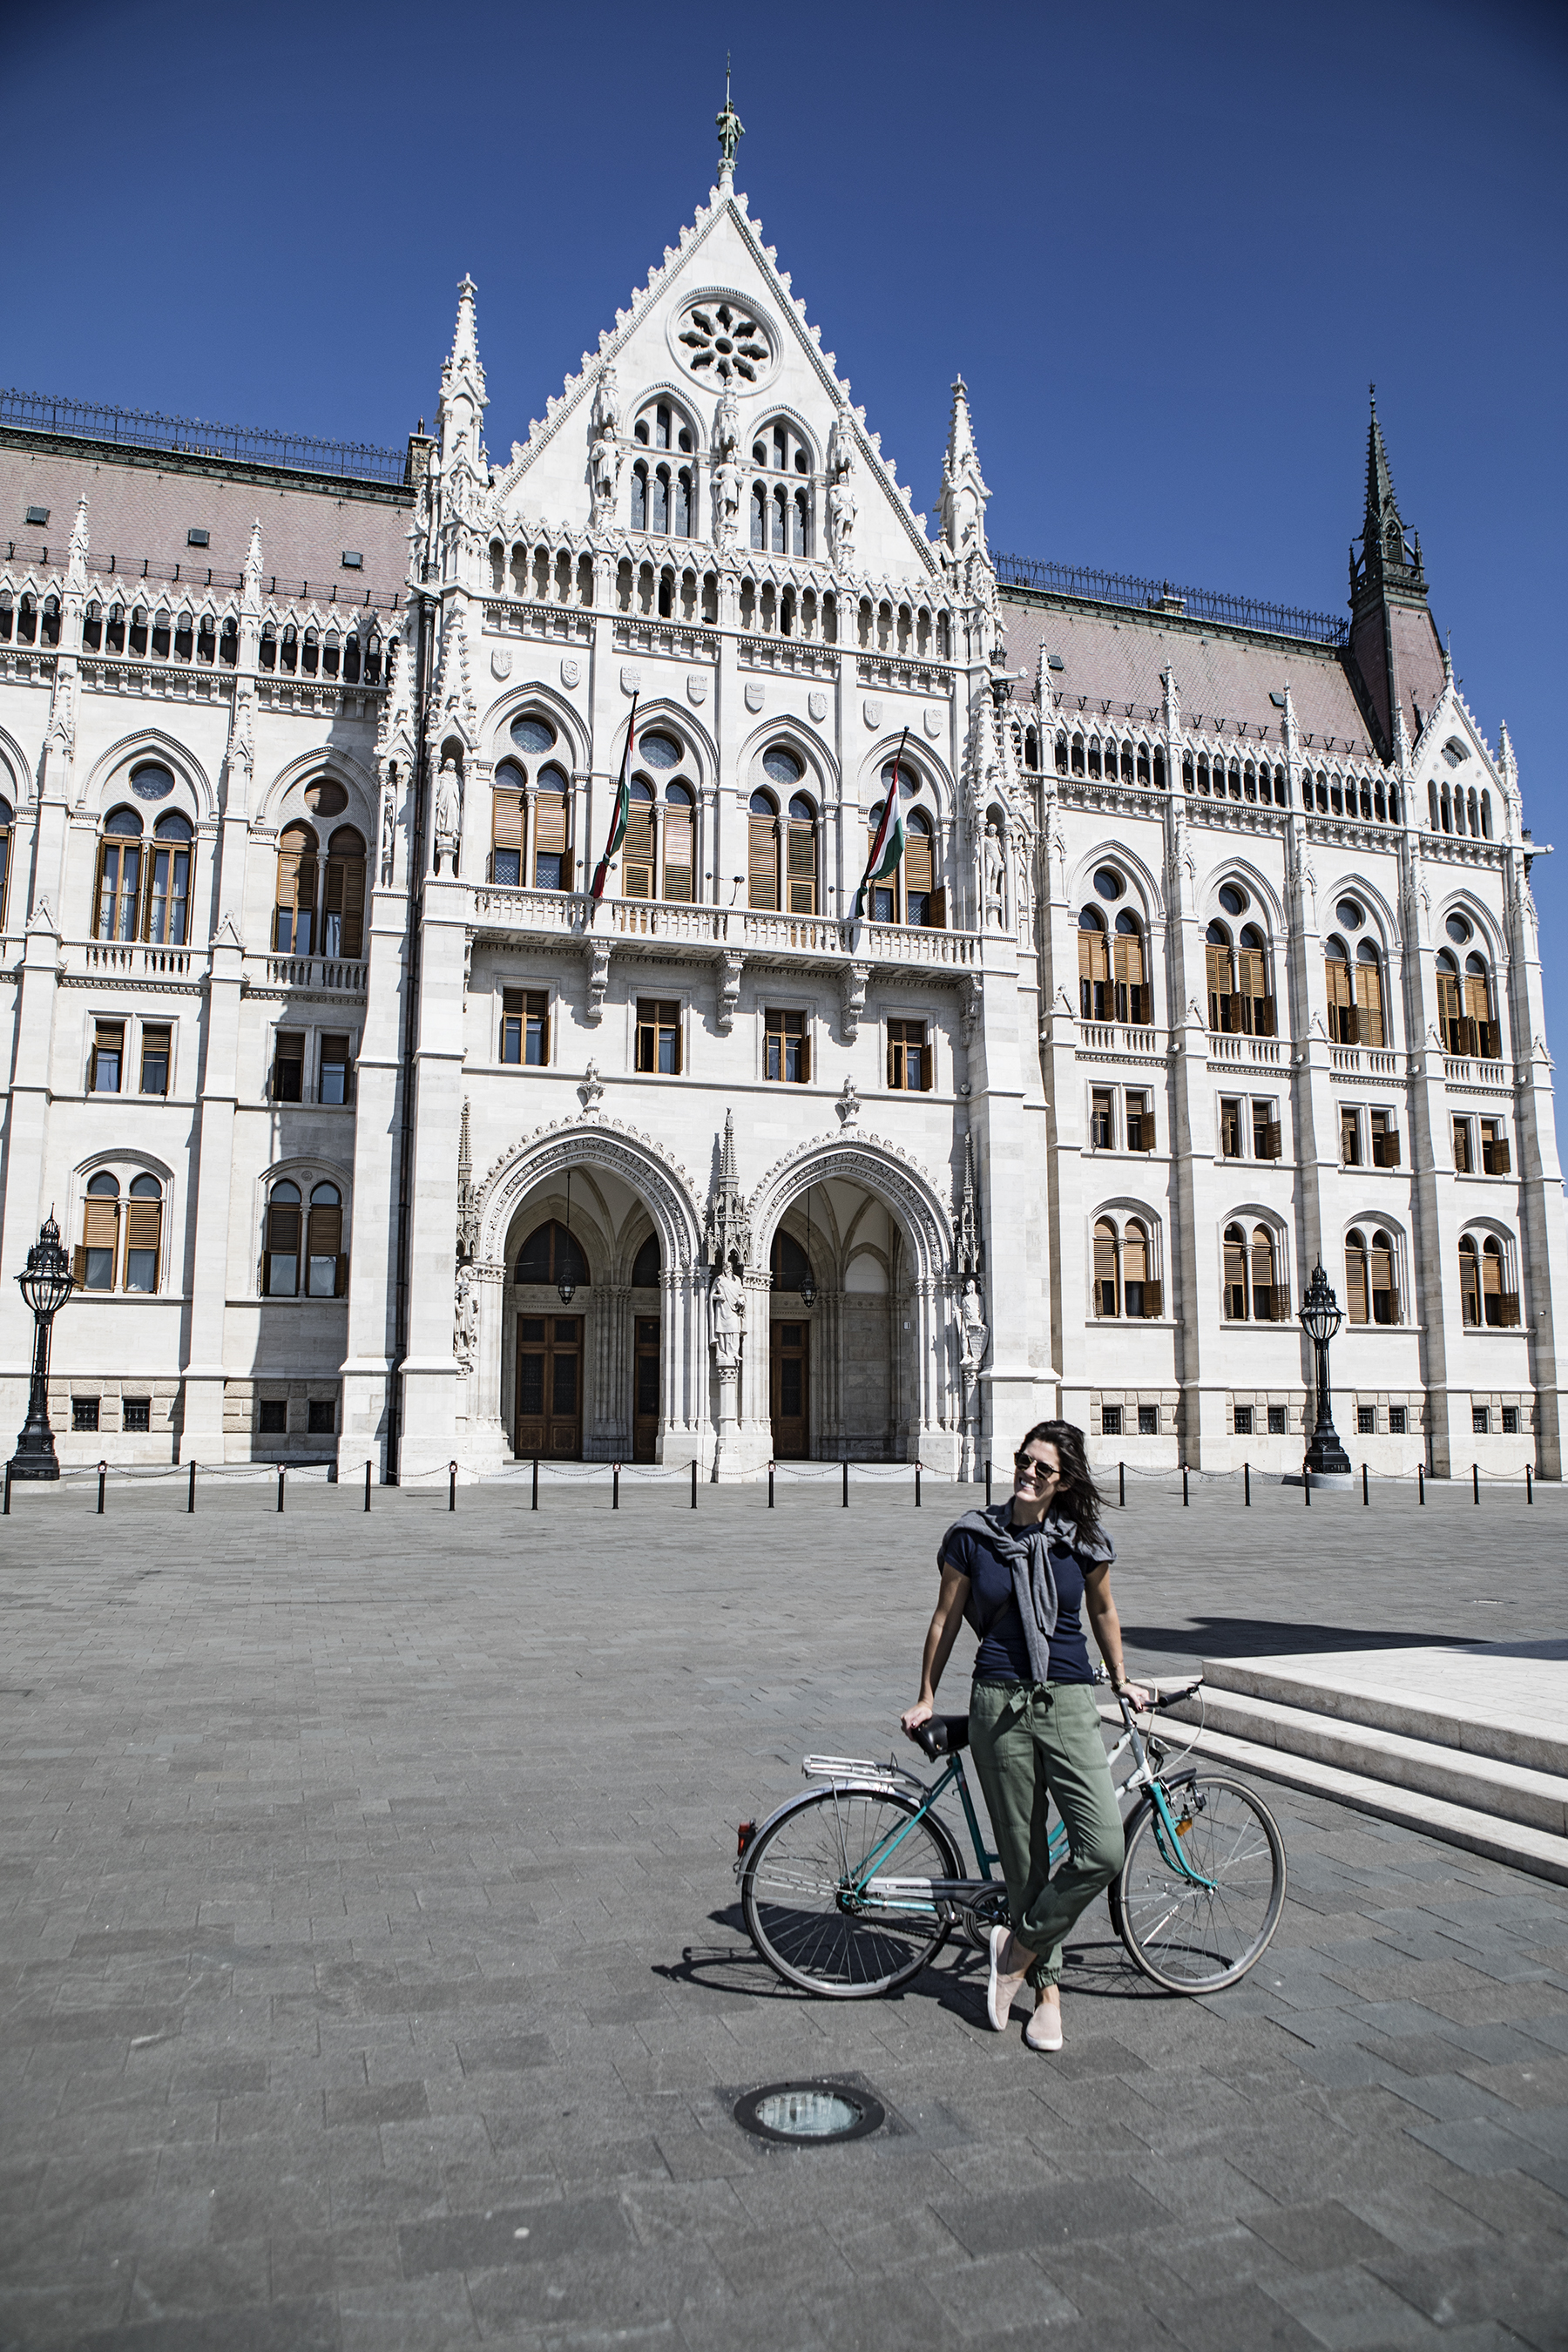 Hungarian Parliament - this sucker has over 600 rooms.  We went in zero of them.